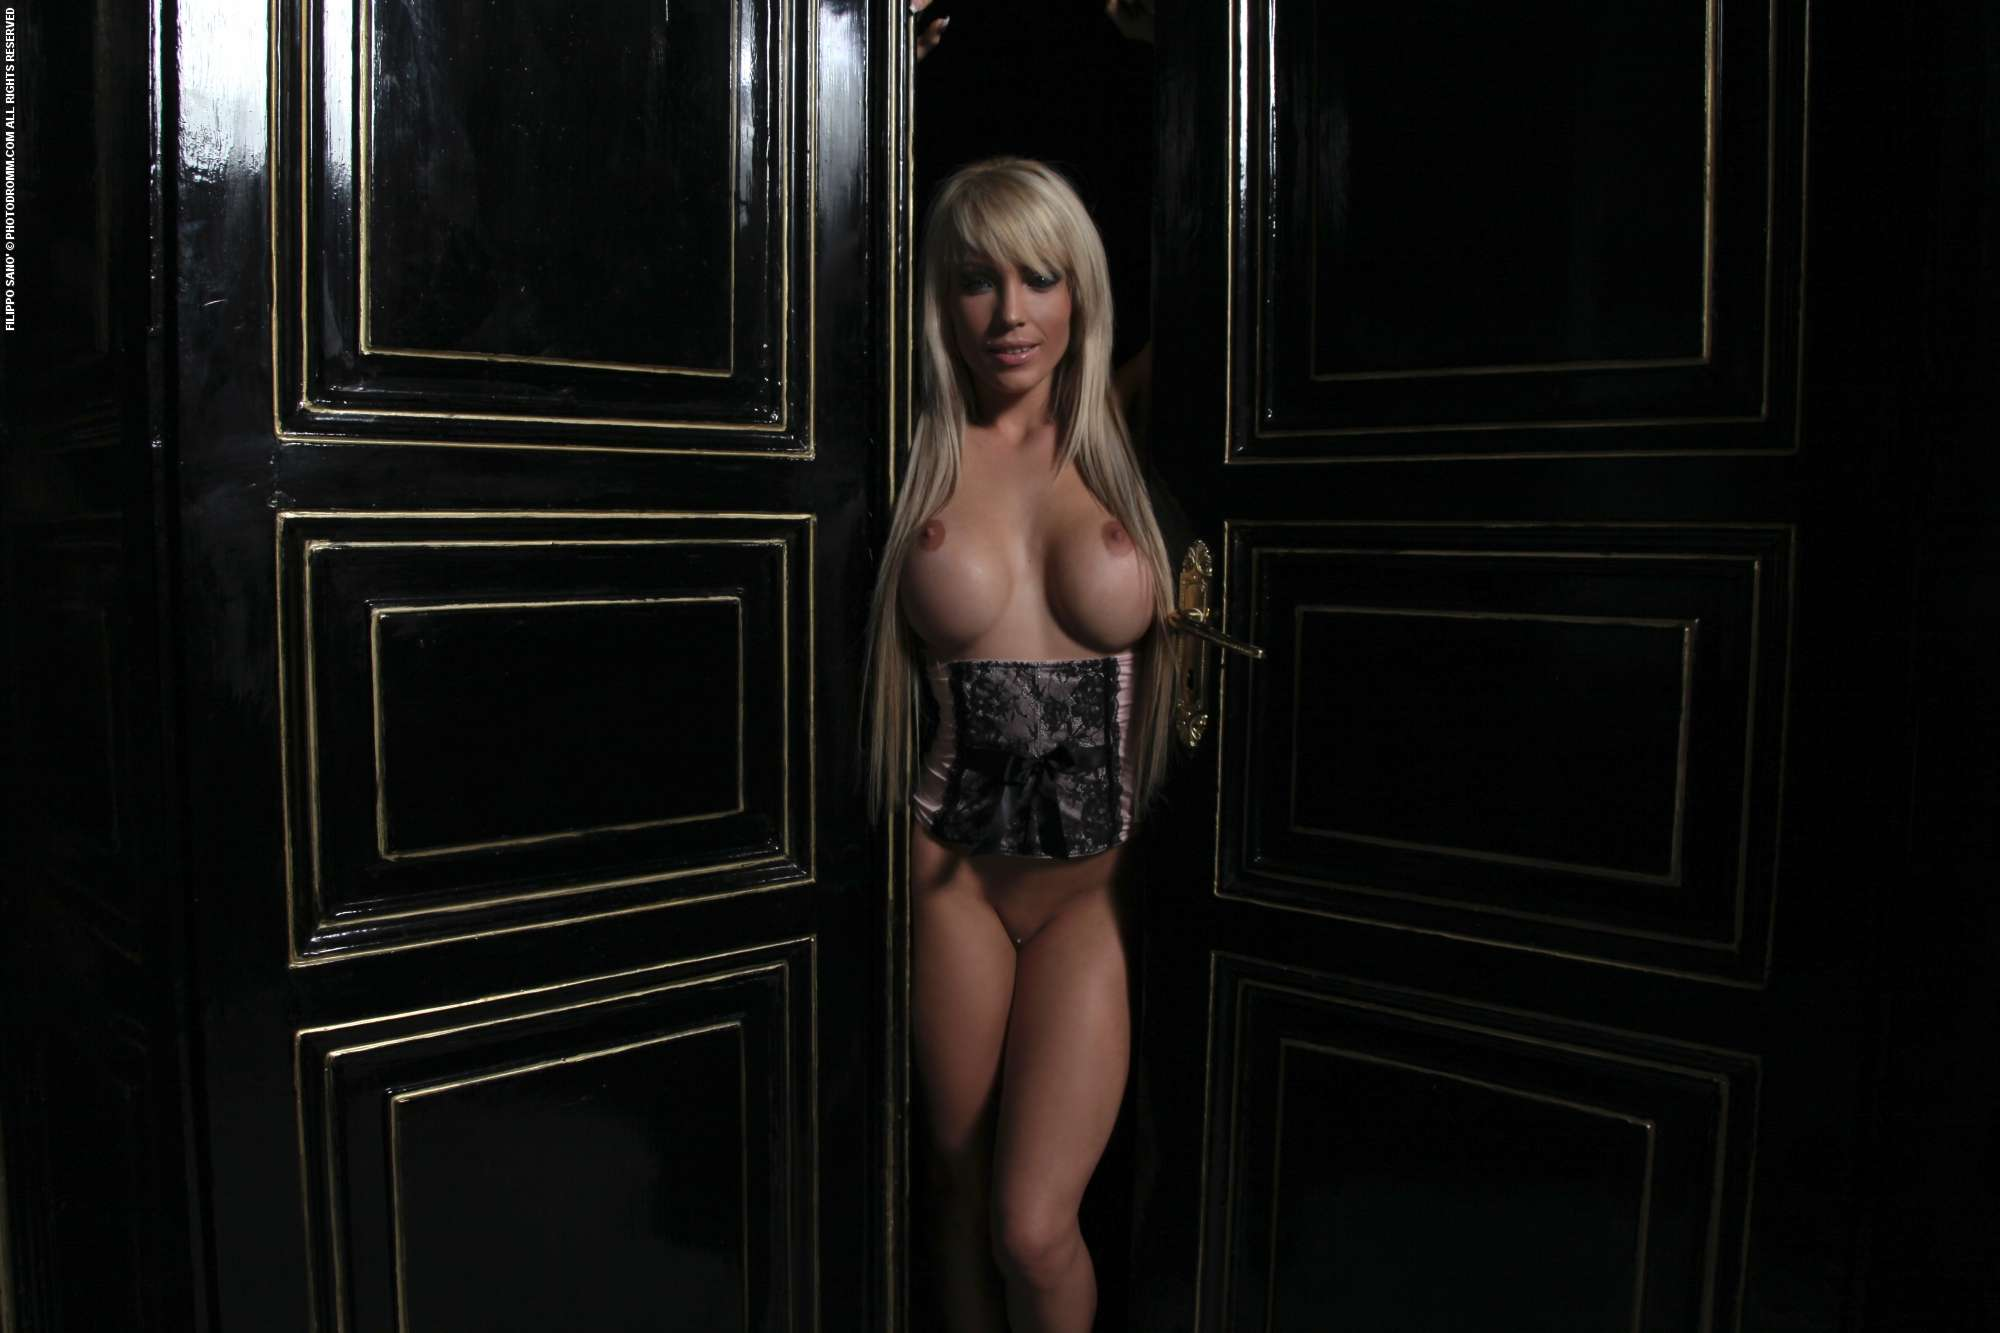 Vikki And Rikki Ikki Nude Mobile Optimised Photo For Android Iphone